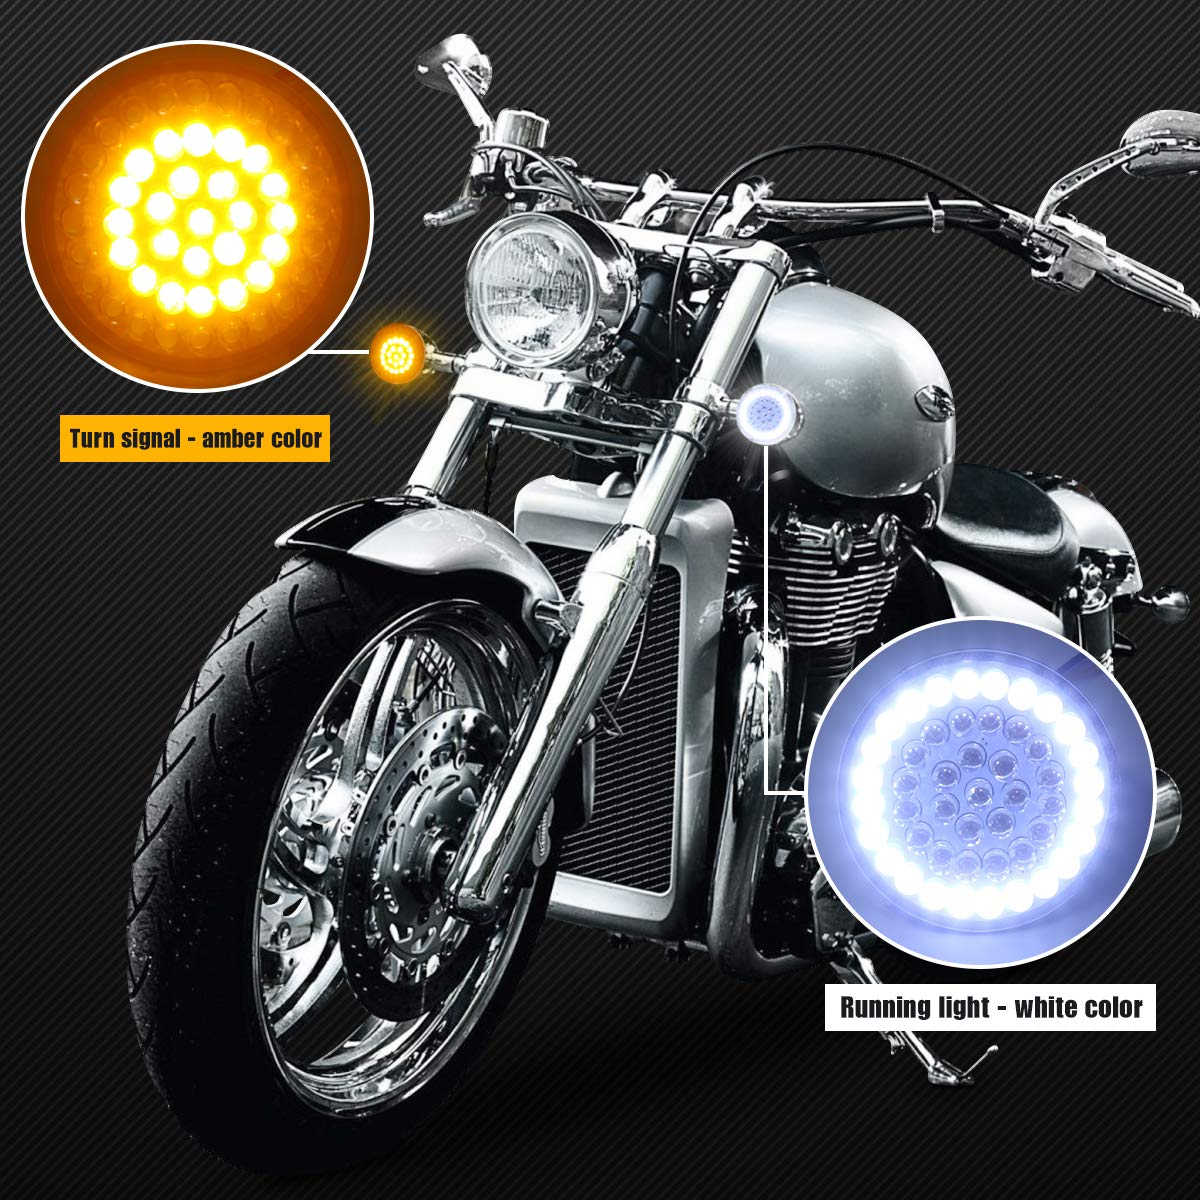 Pair Motorcycle 2 Inch Bullet Style 1157 Front White DRL Amber Turn Signal LED Inserts for Harley Softail 2011-2017 Dyna 2012-2017 Sportster Touring 2014-2017